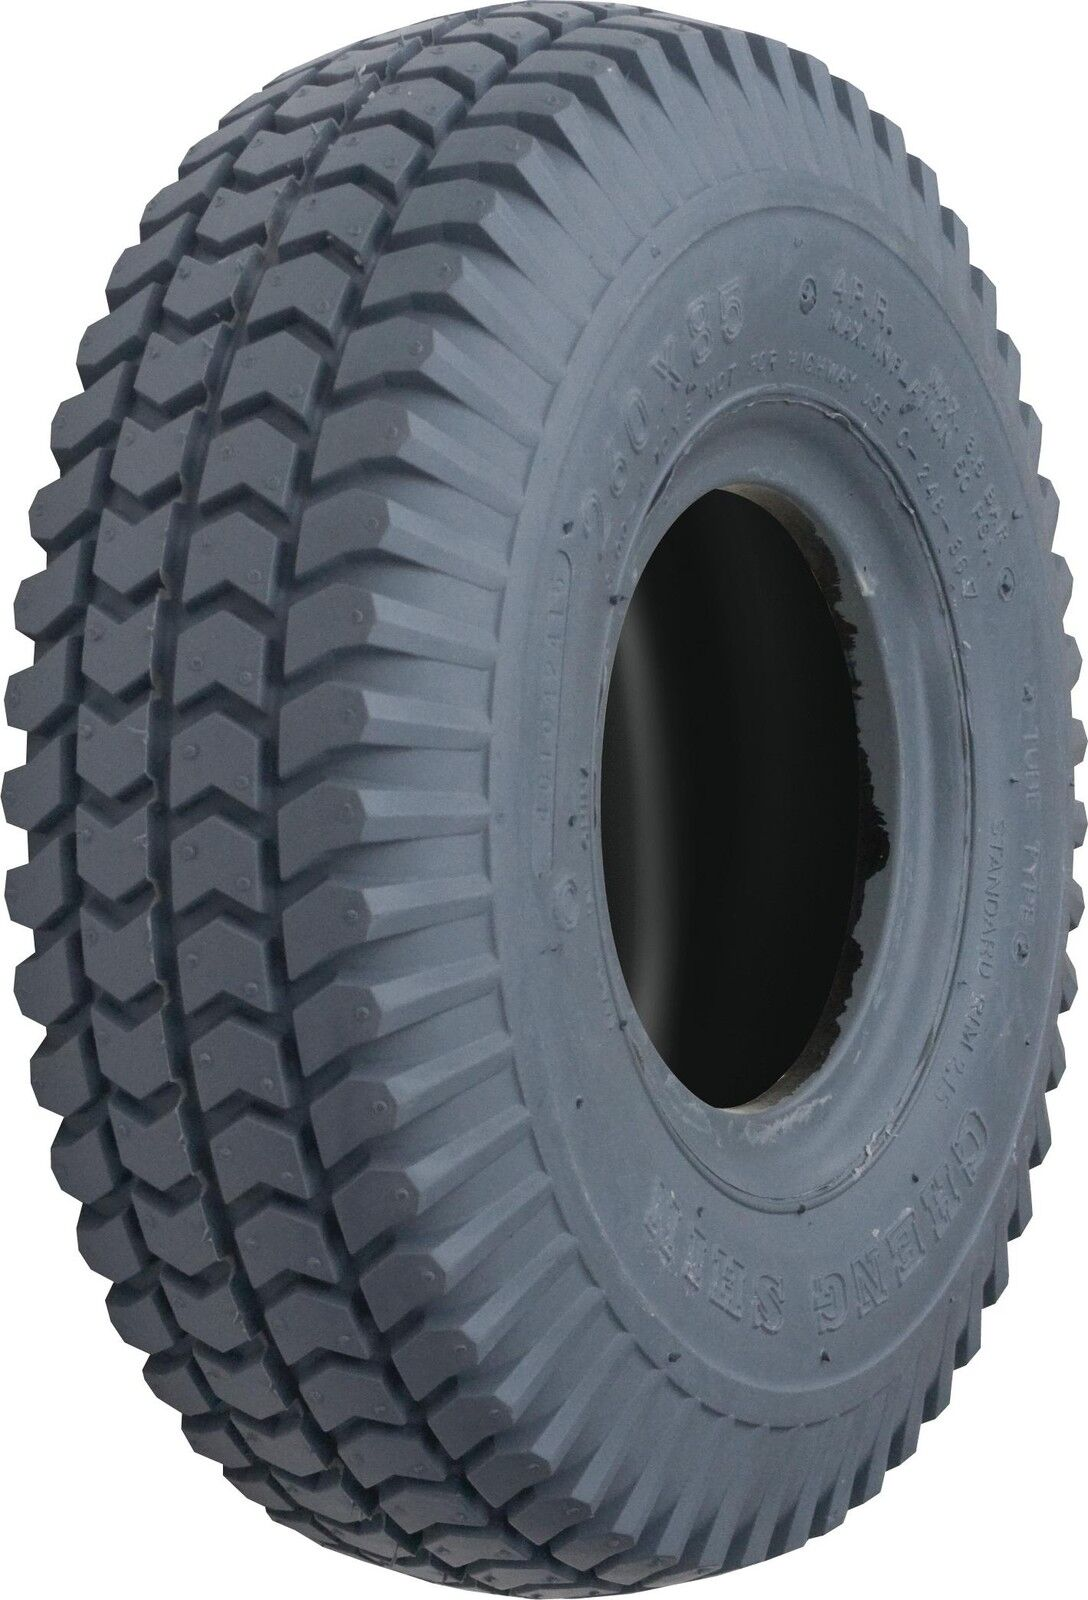 4 X Tyres 2x Blocked 2x Ribbed & 4 Tubes 260x85 - 3.00-4 - 300x4 Scooter